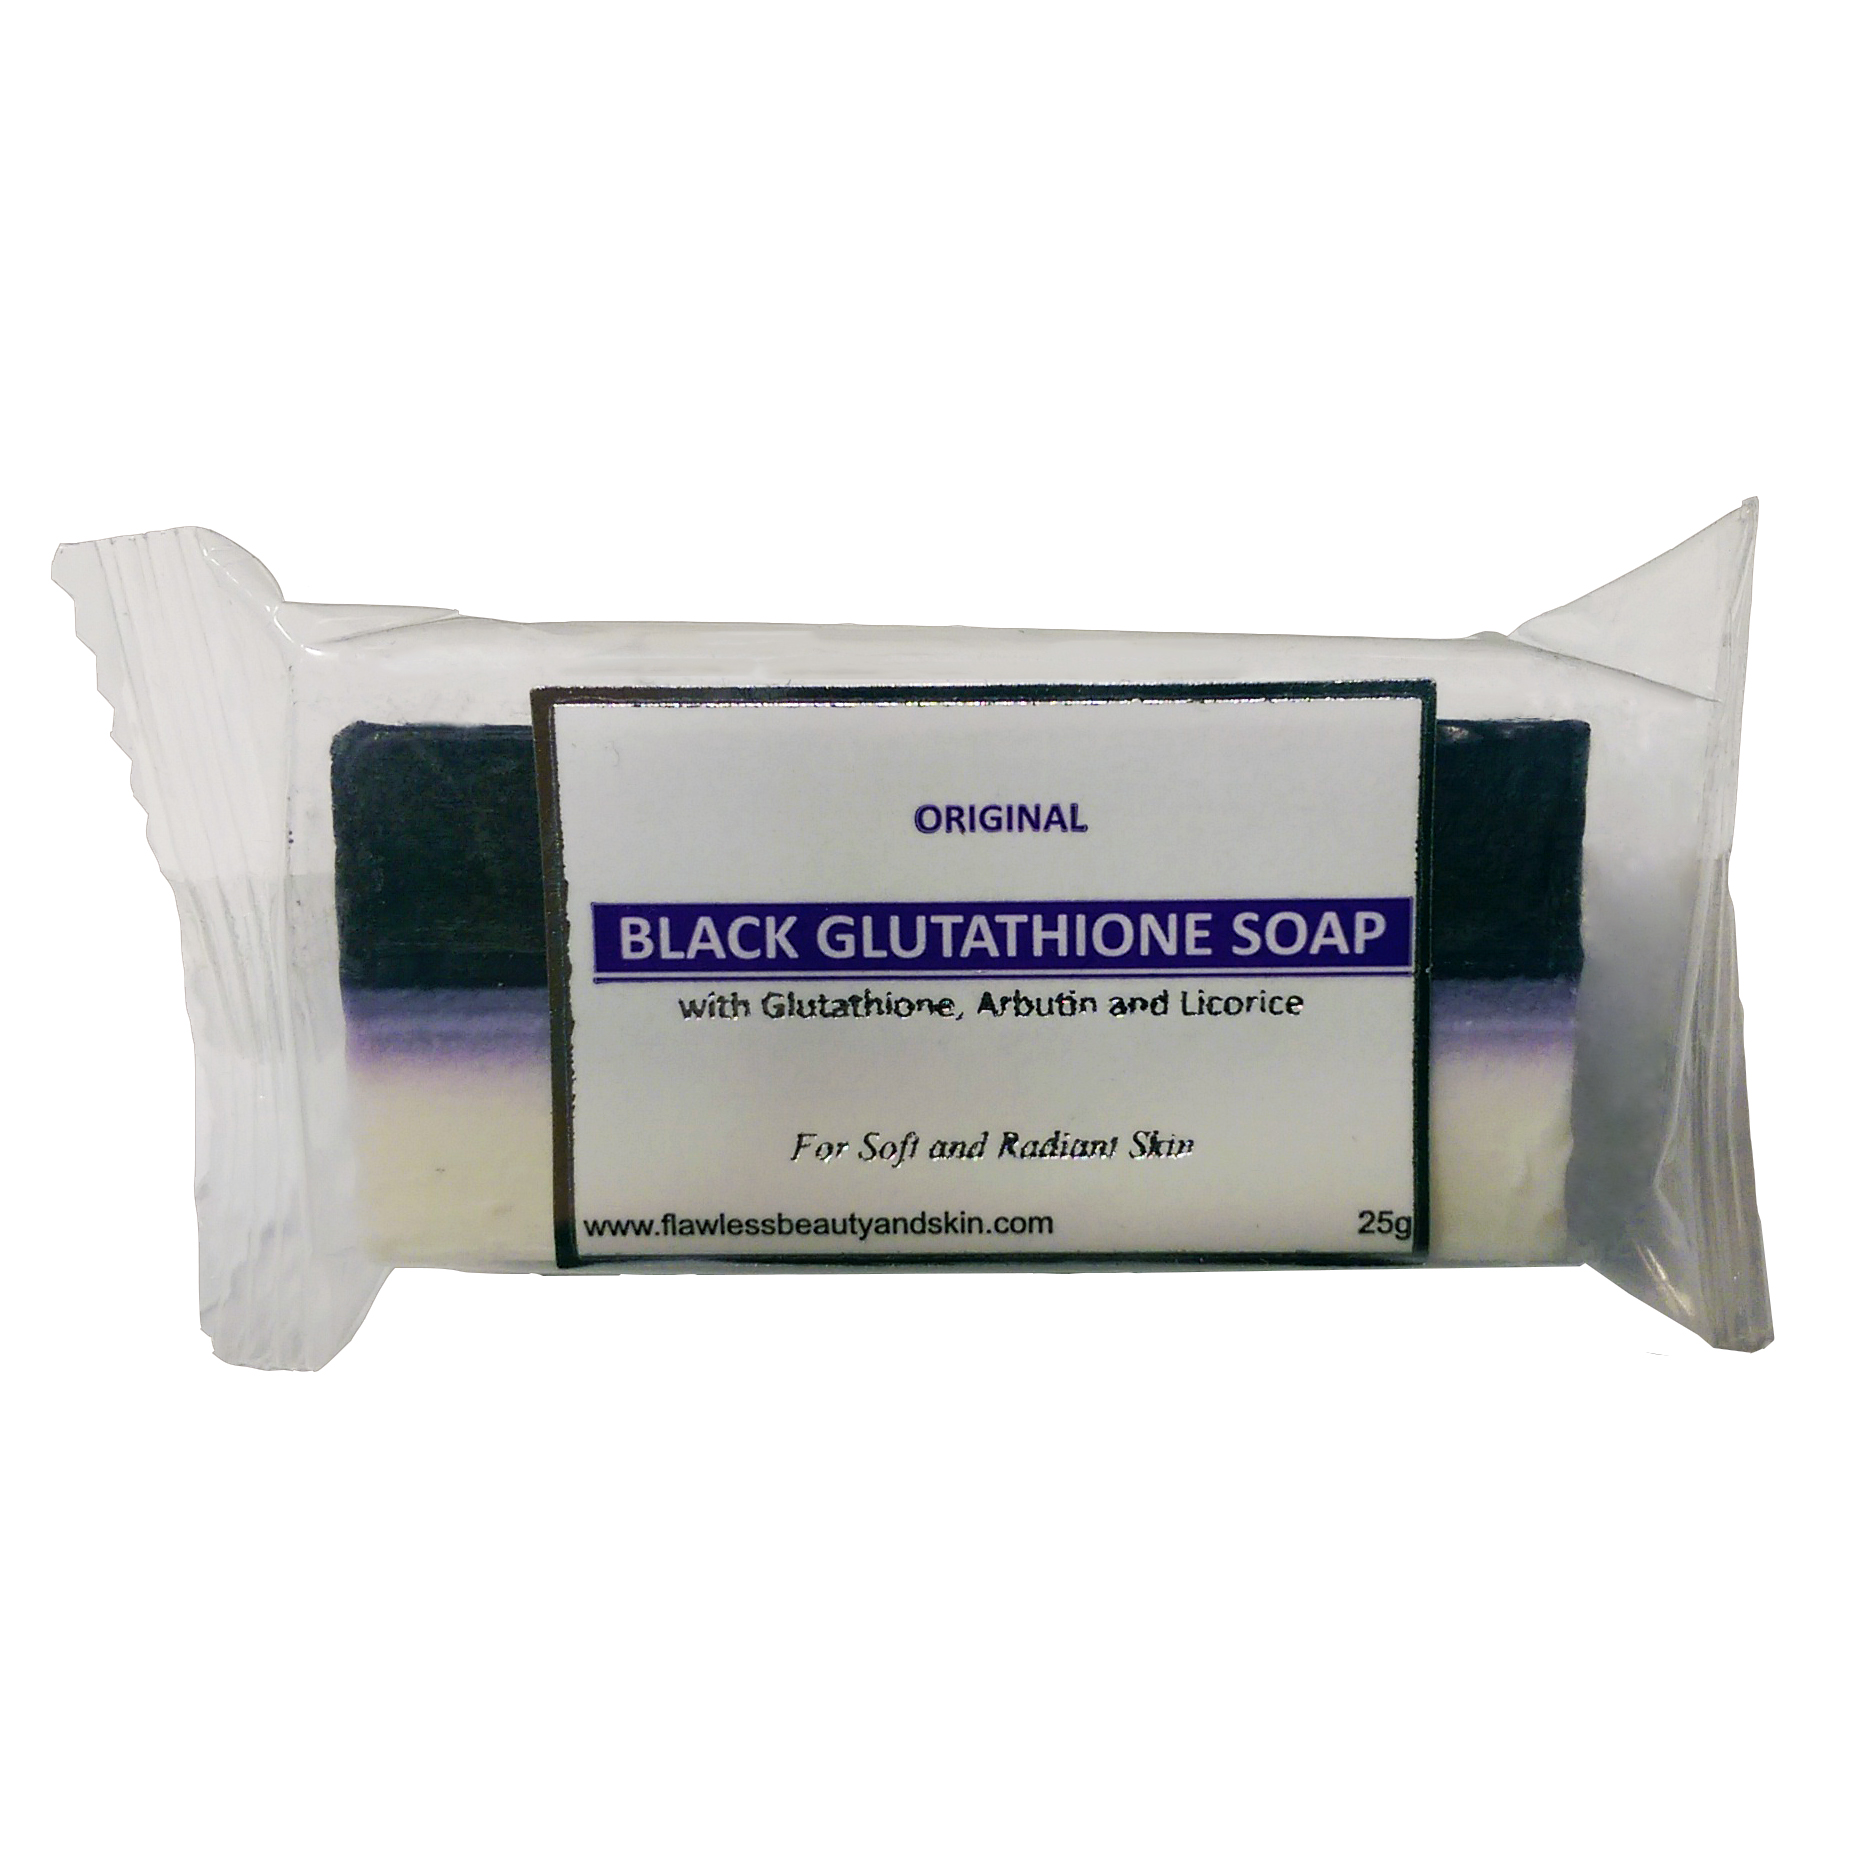 6 Bars of Glutathione & Arbutin/Licorice Black & White Soap - Whitening Beauty Bar - SAMPLE SIZE